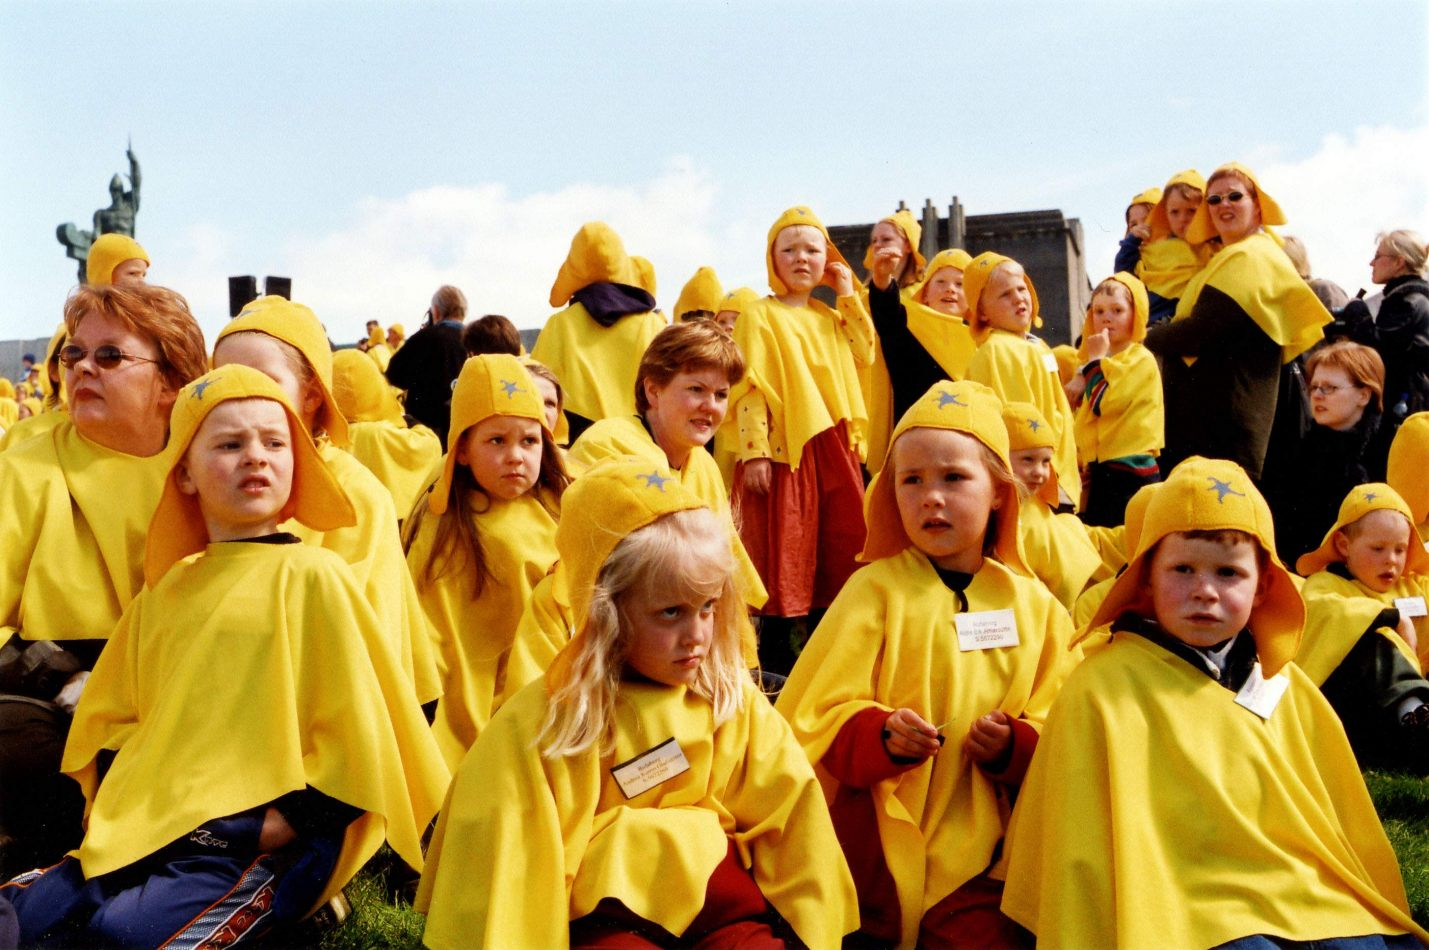 Anthony Ellis Photography: From the North - The Yellow People